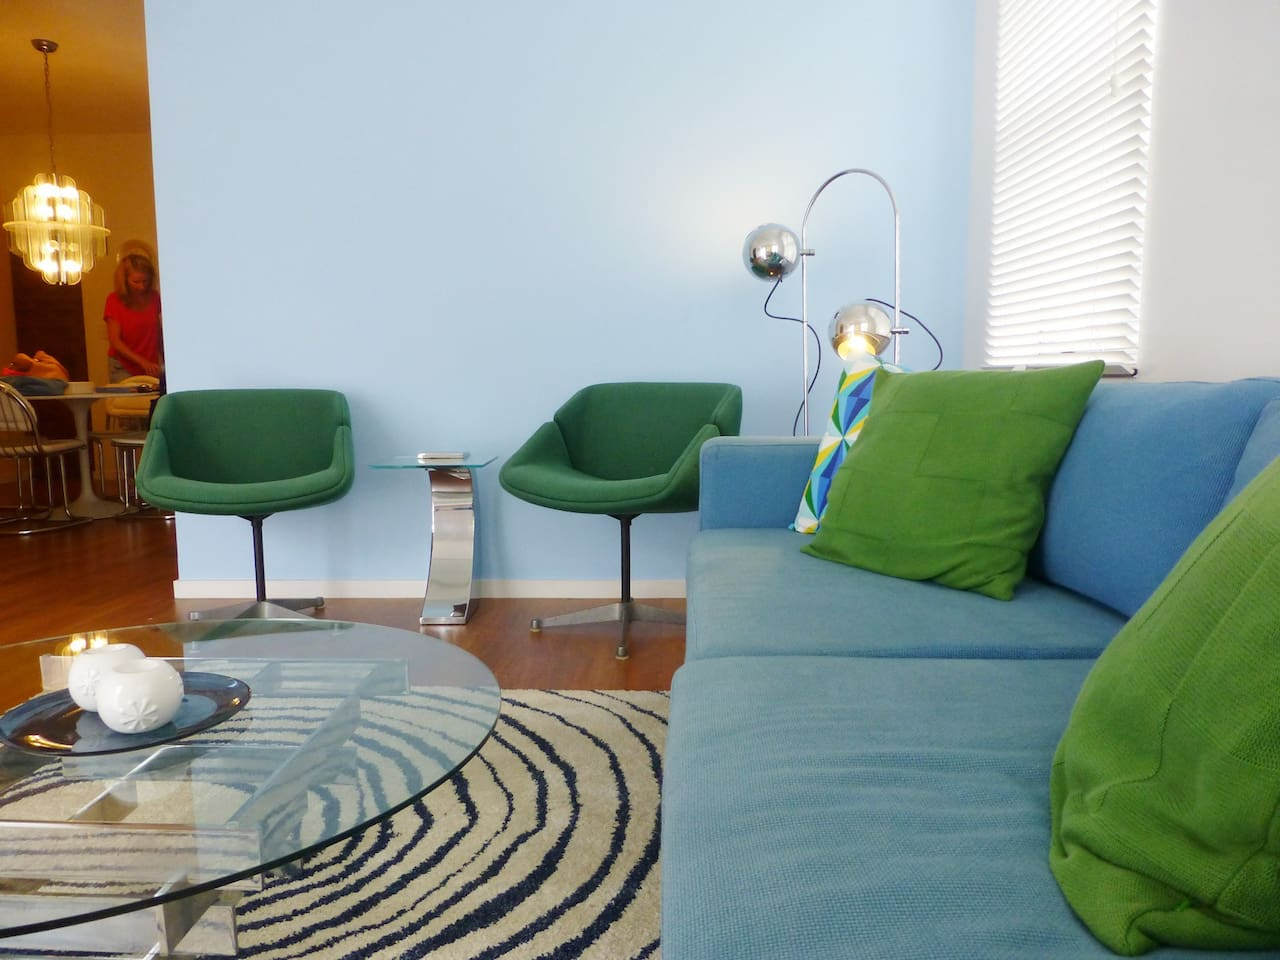 Home away from home: Design living, 60ies meets Jonathan Adler